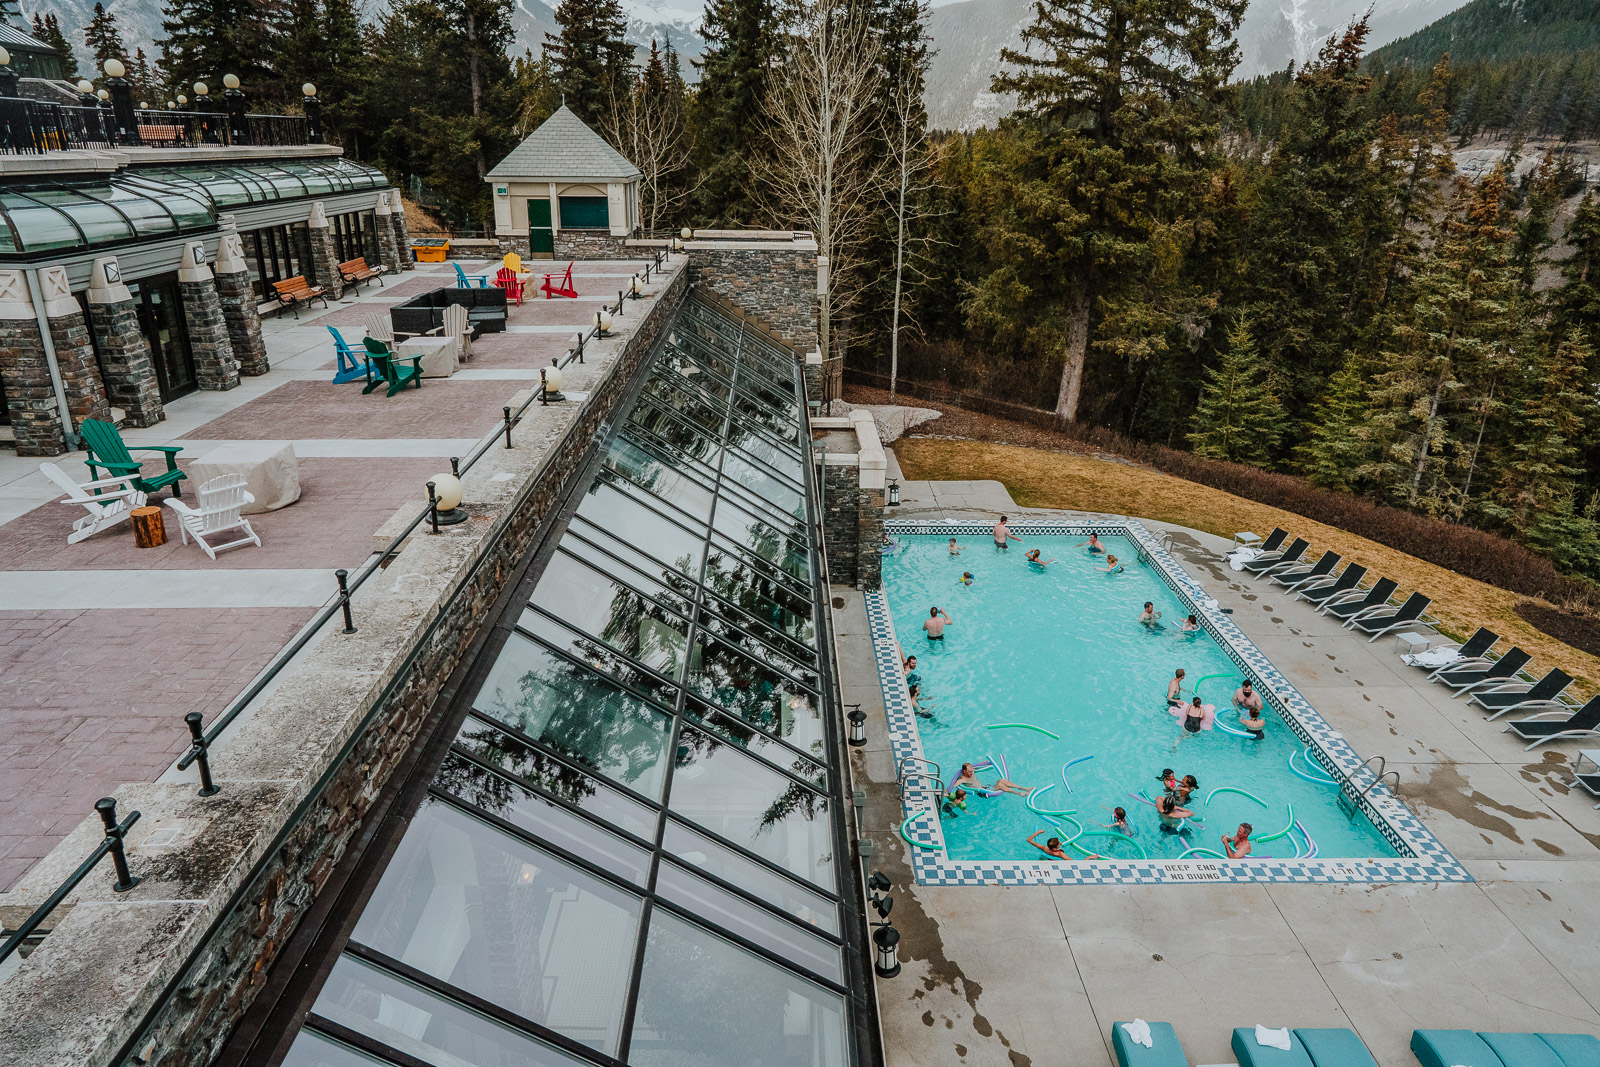 Pool at the Banff Springs hotel